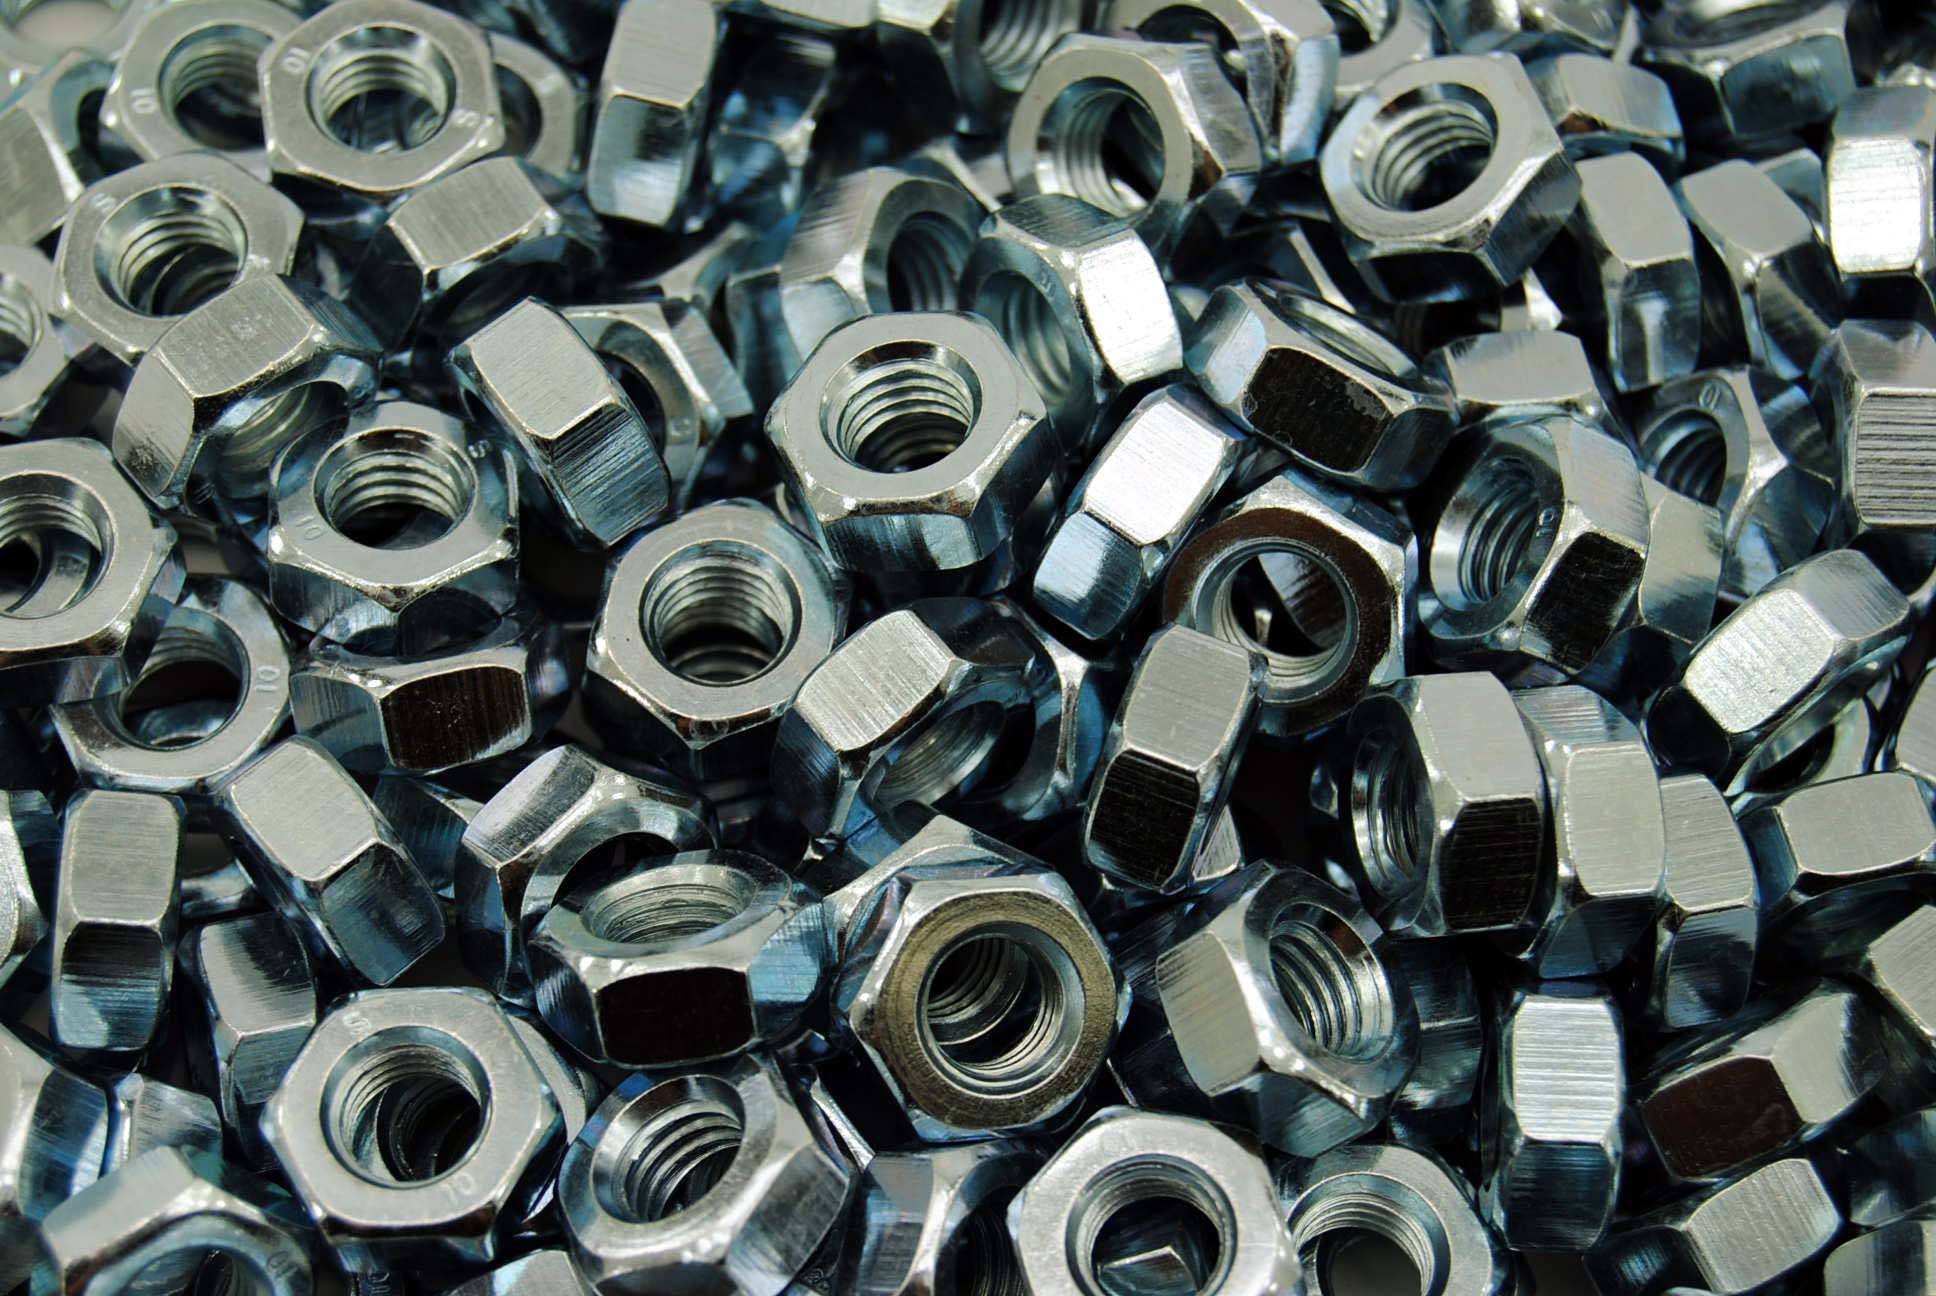 (300) M10-1.5 Metric Hex Nuts Class 10 Zinc 10mm DIN 934